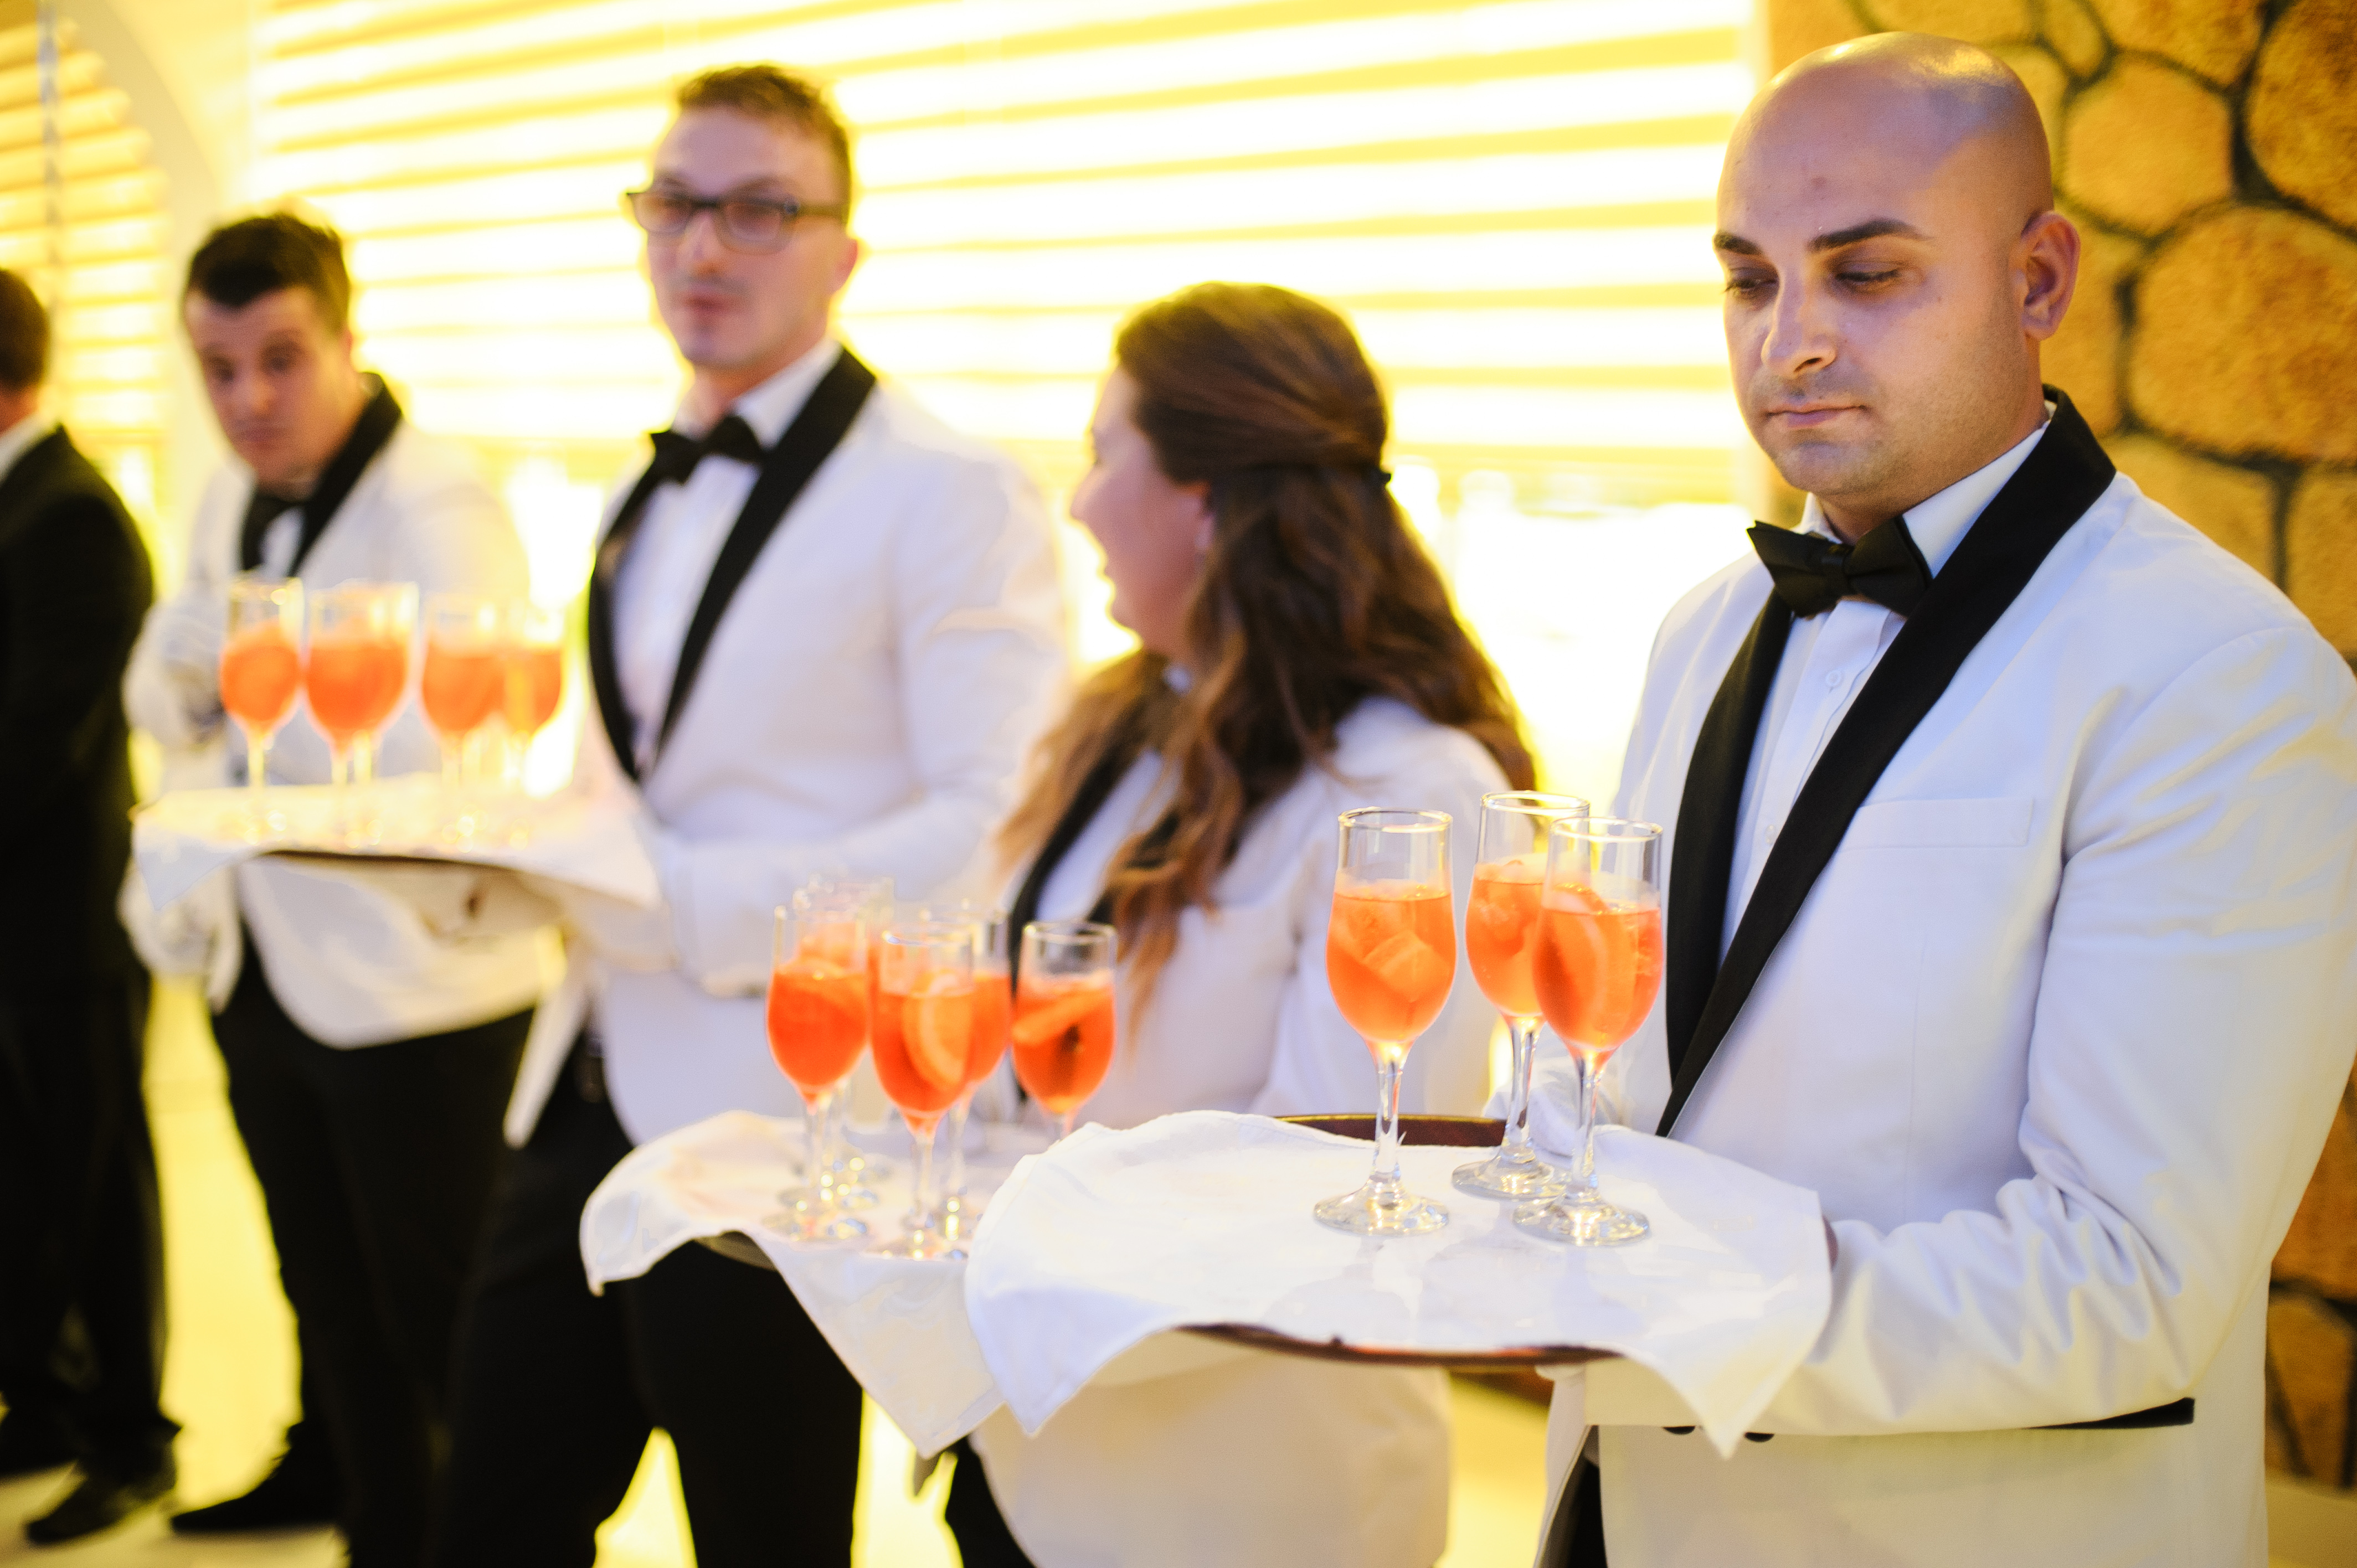 Waiters cocktail reception